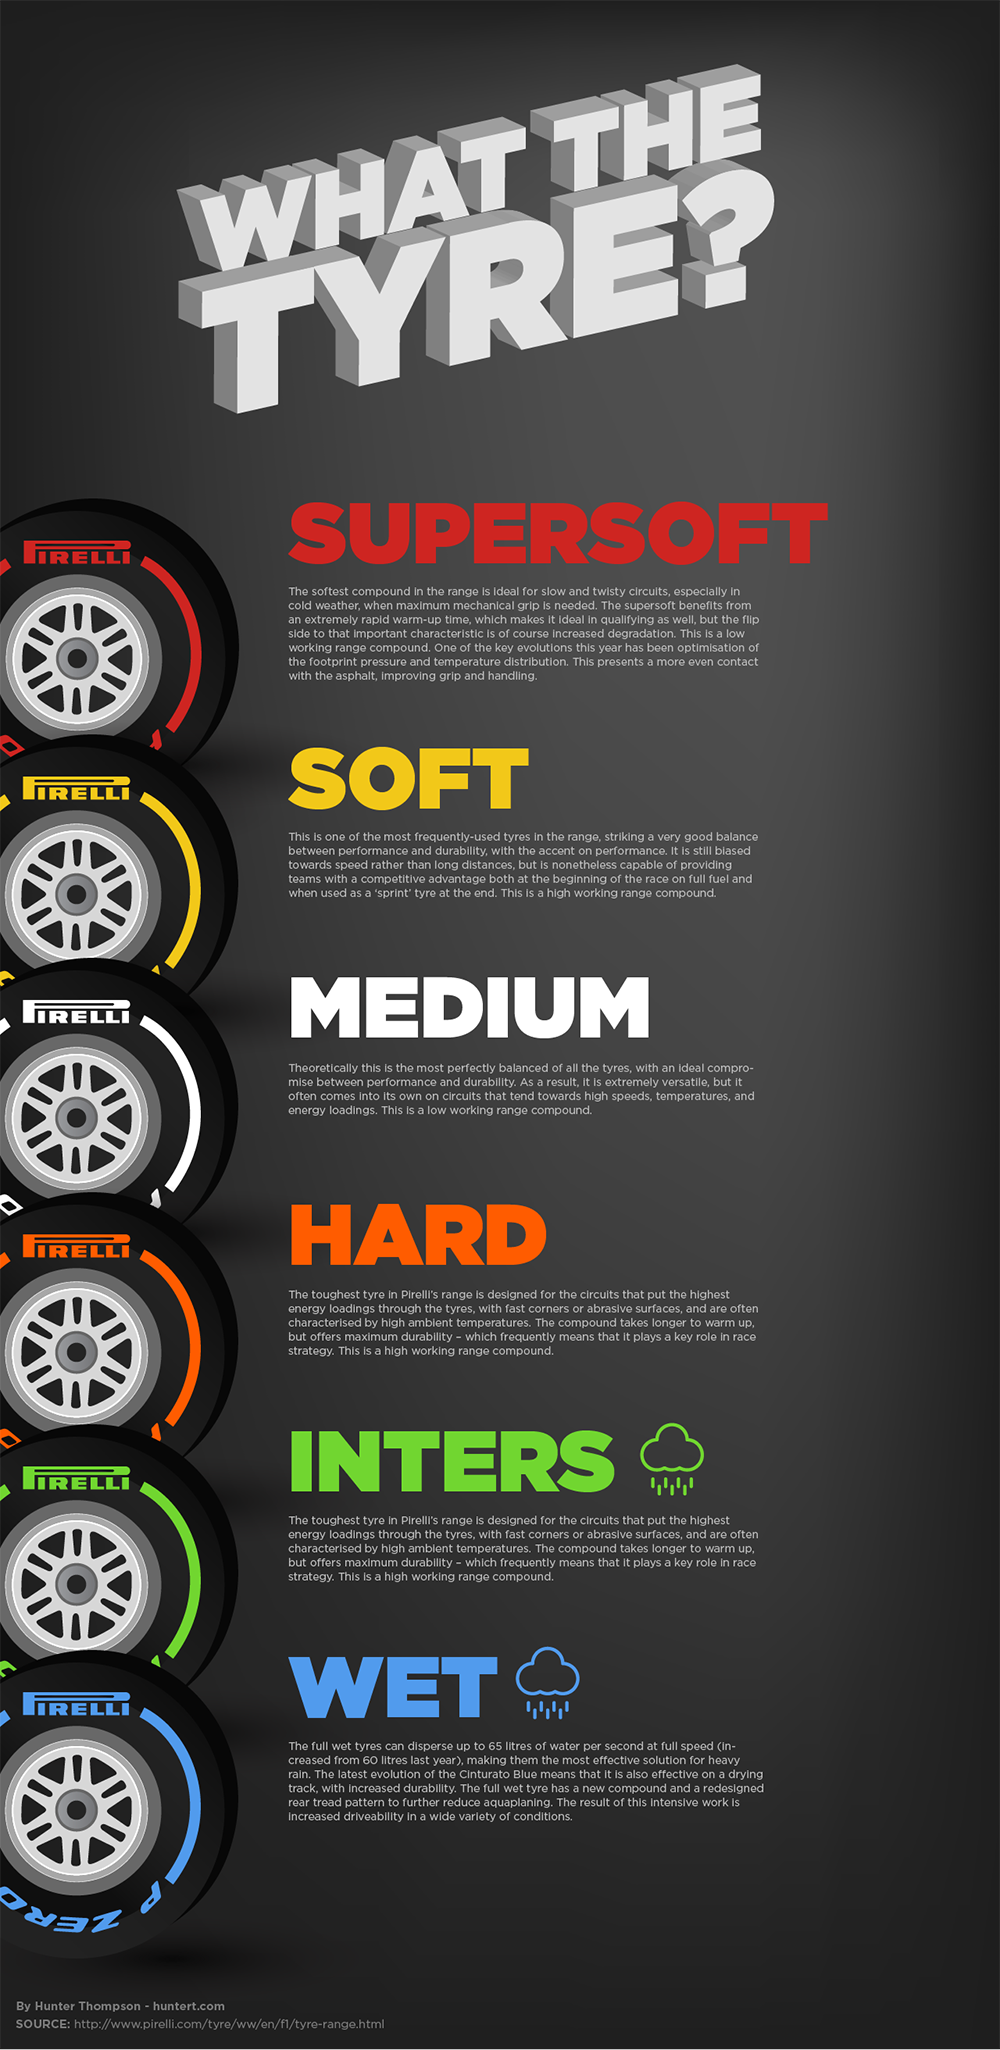 Explanation Of Pirelli Racing Tyres For Formula 1 Racing Cars F1 Is Great But There Are Just So Many Darn Tires This Shoul Formula 1 Car Formula 1 Race Cars